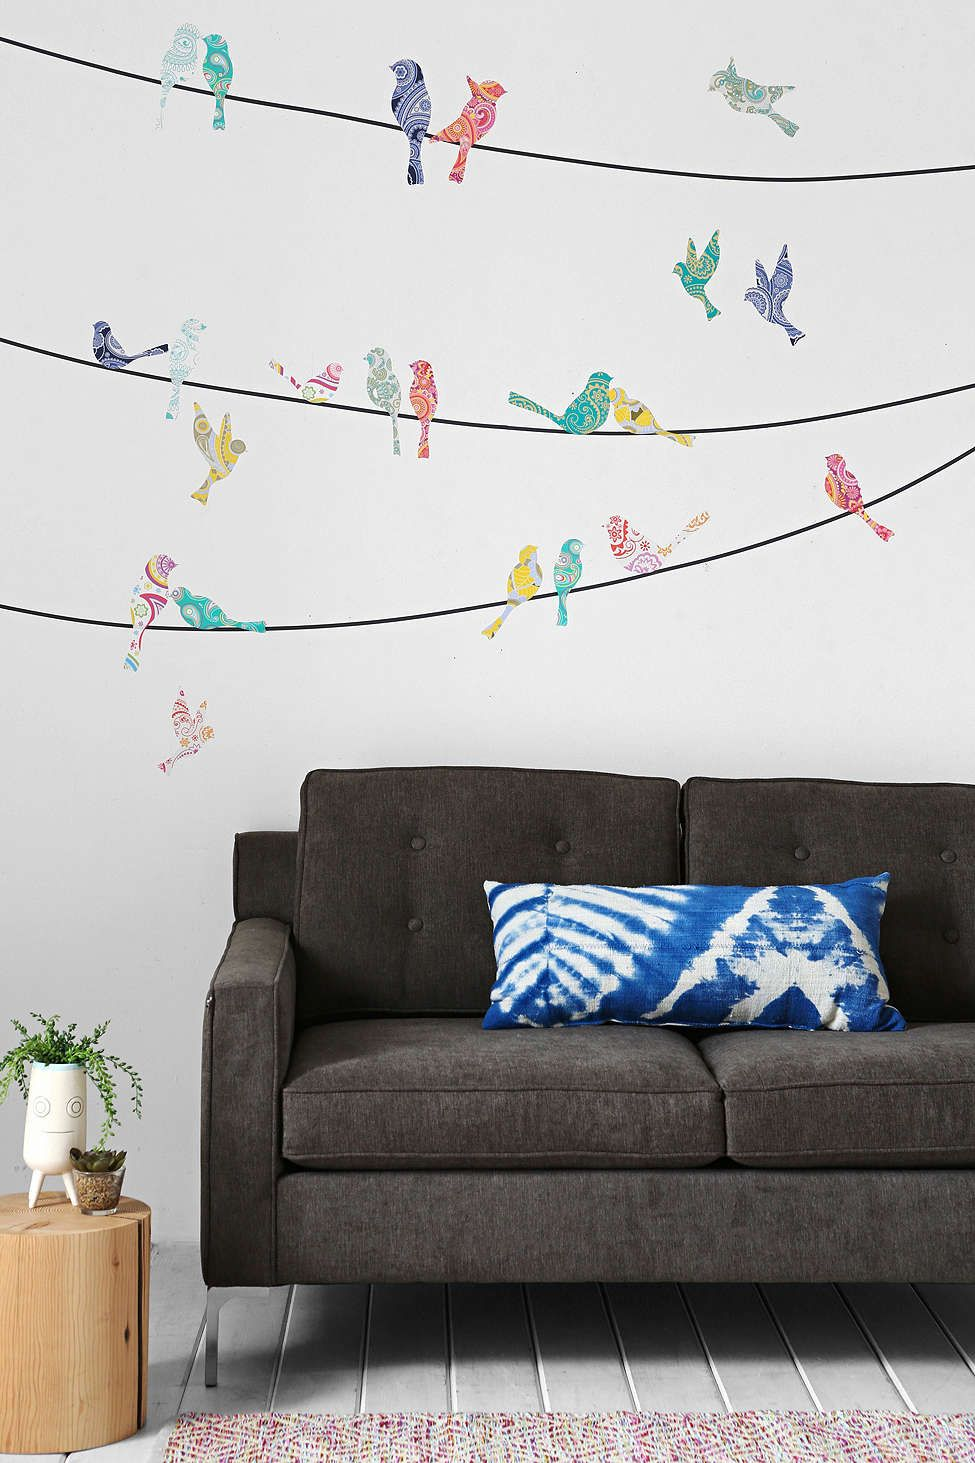 Paisley Birds On Wire Wall Decal Wall Decals Dorm Decorations Wall Painting